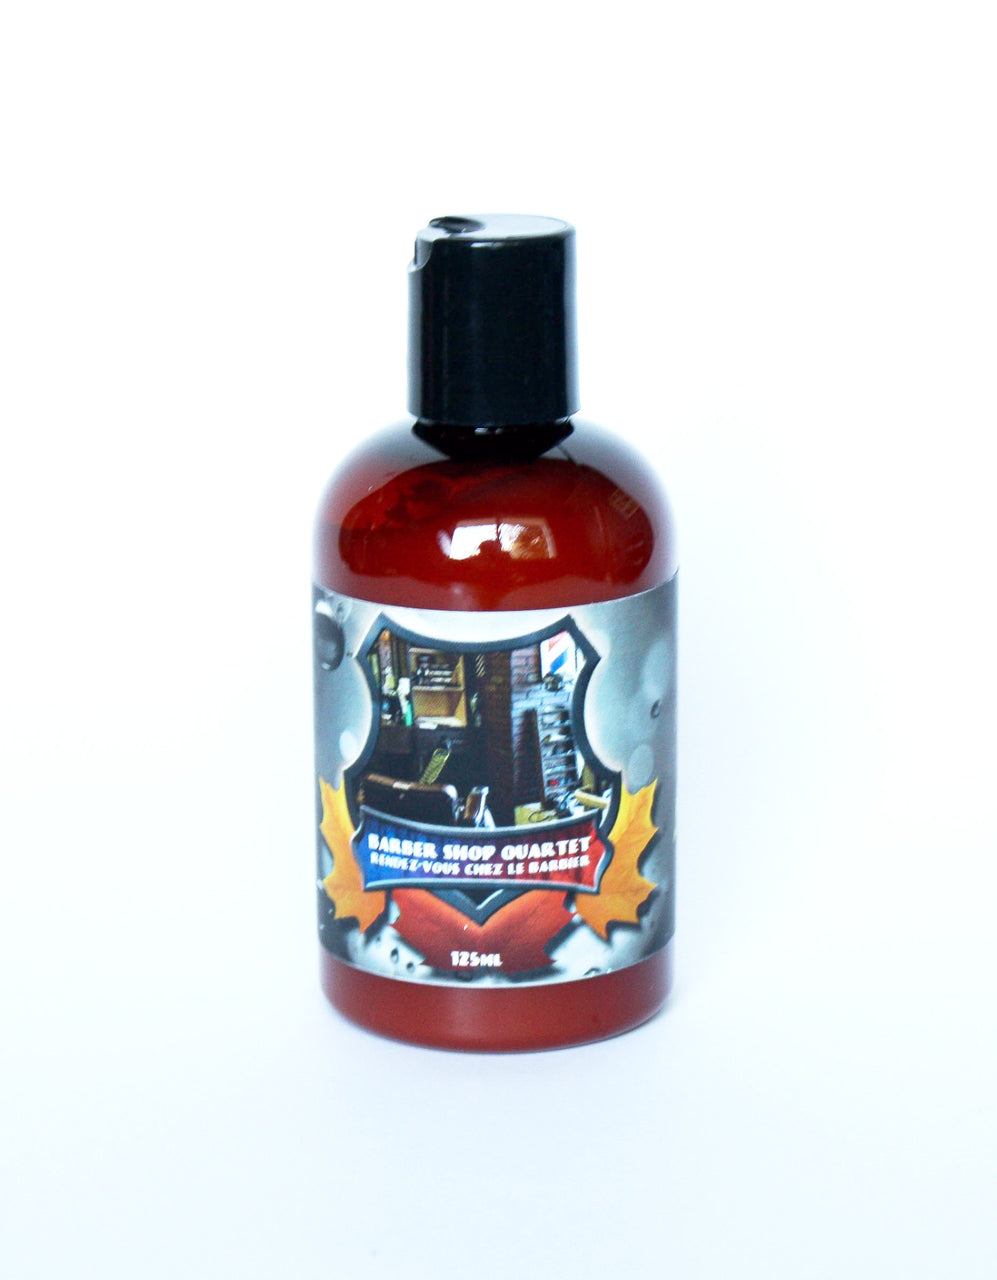 Soapy Bathman Barbershop Quartet Aftershave Balm